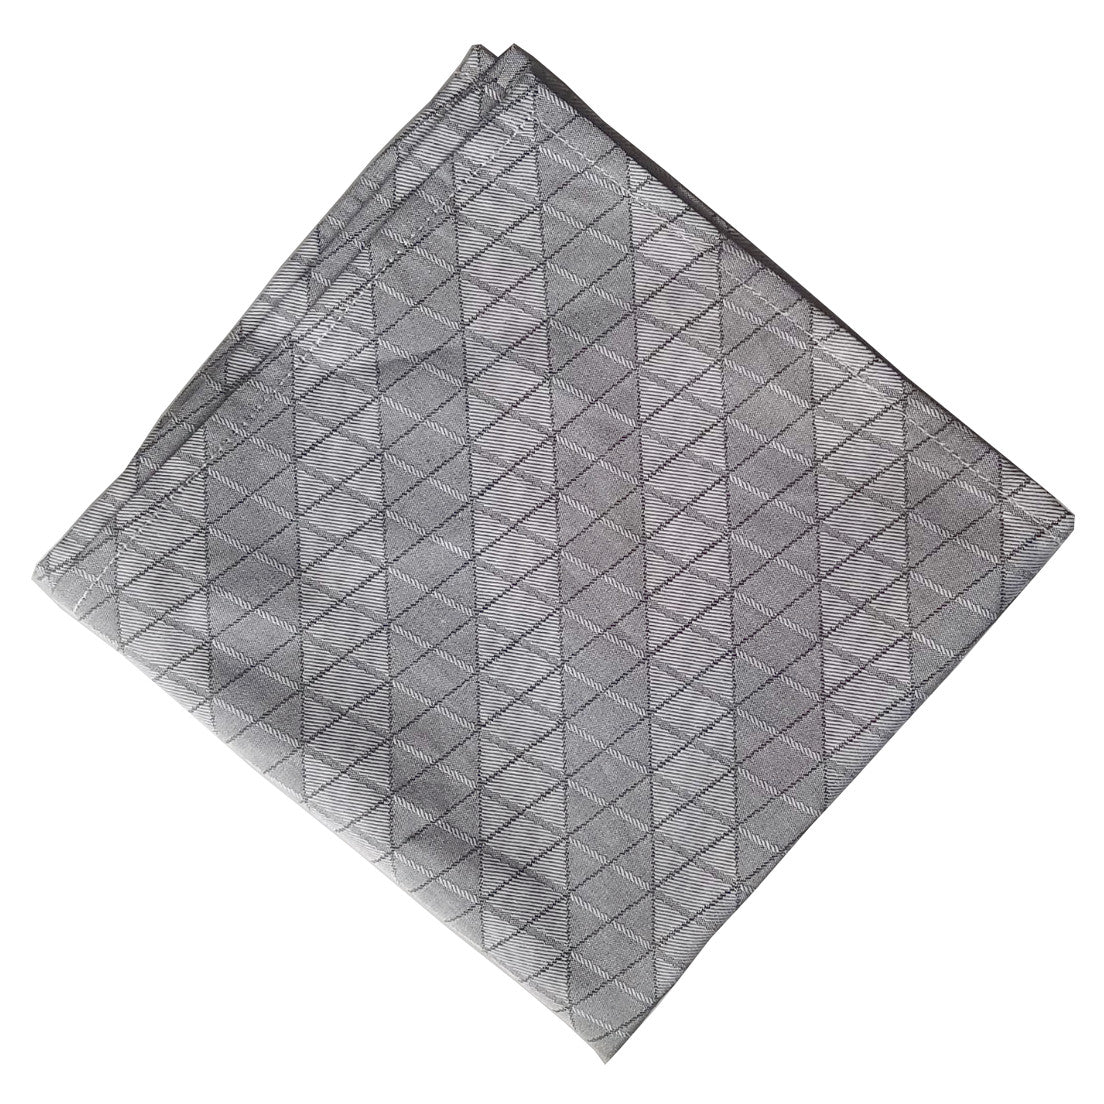 Steel Gray Irian pocket Square